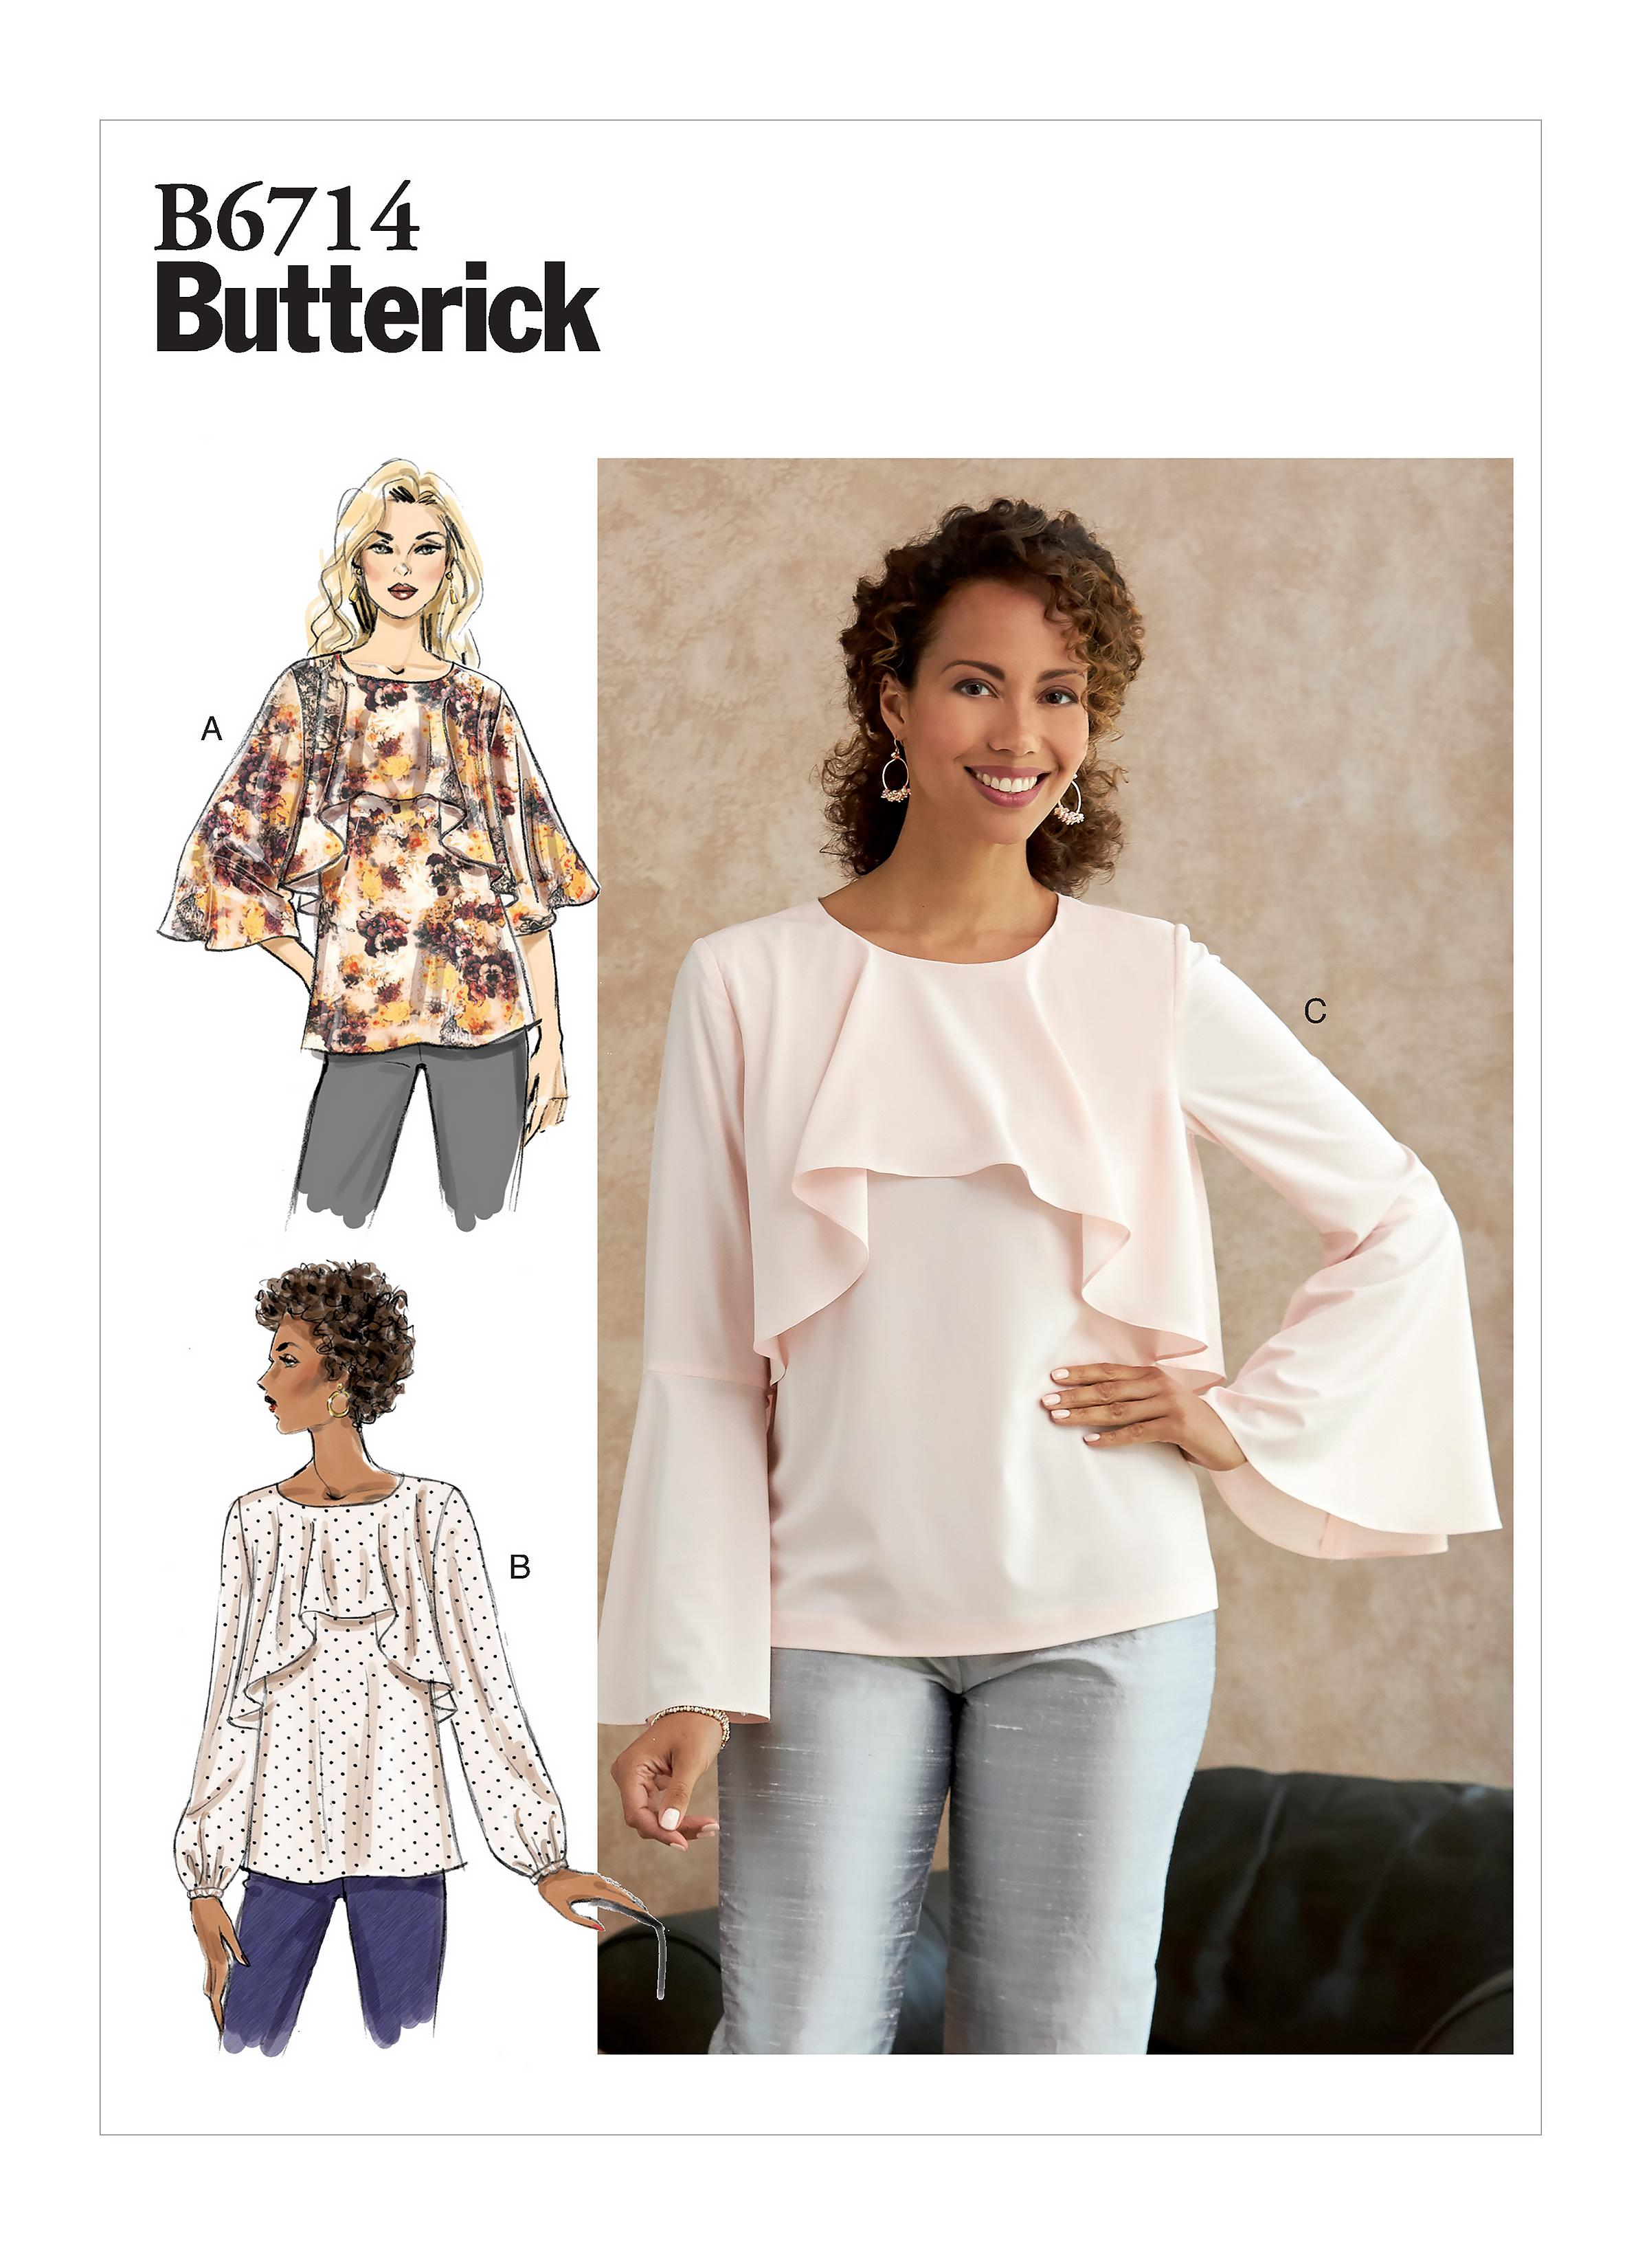 Butterick B6714 Misses' Top